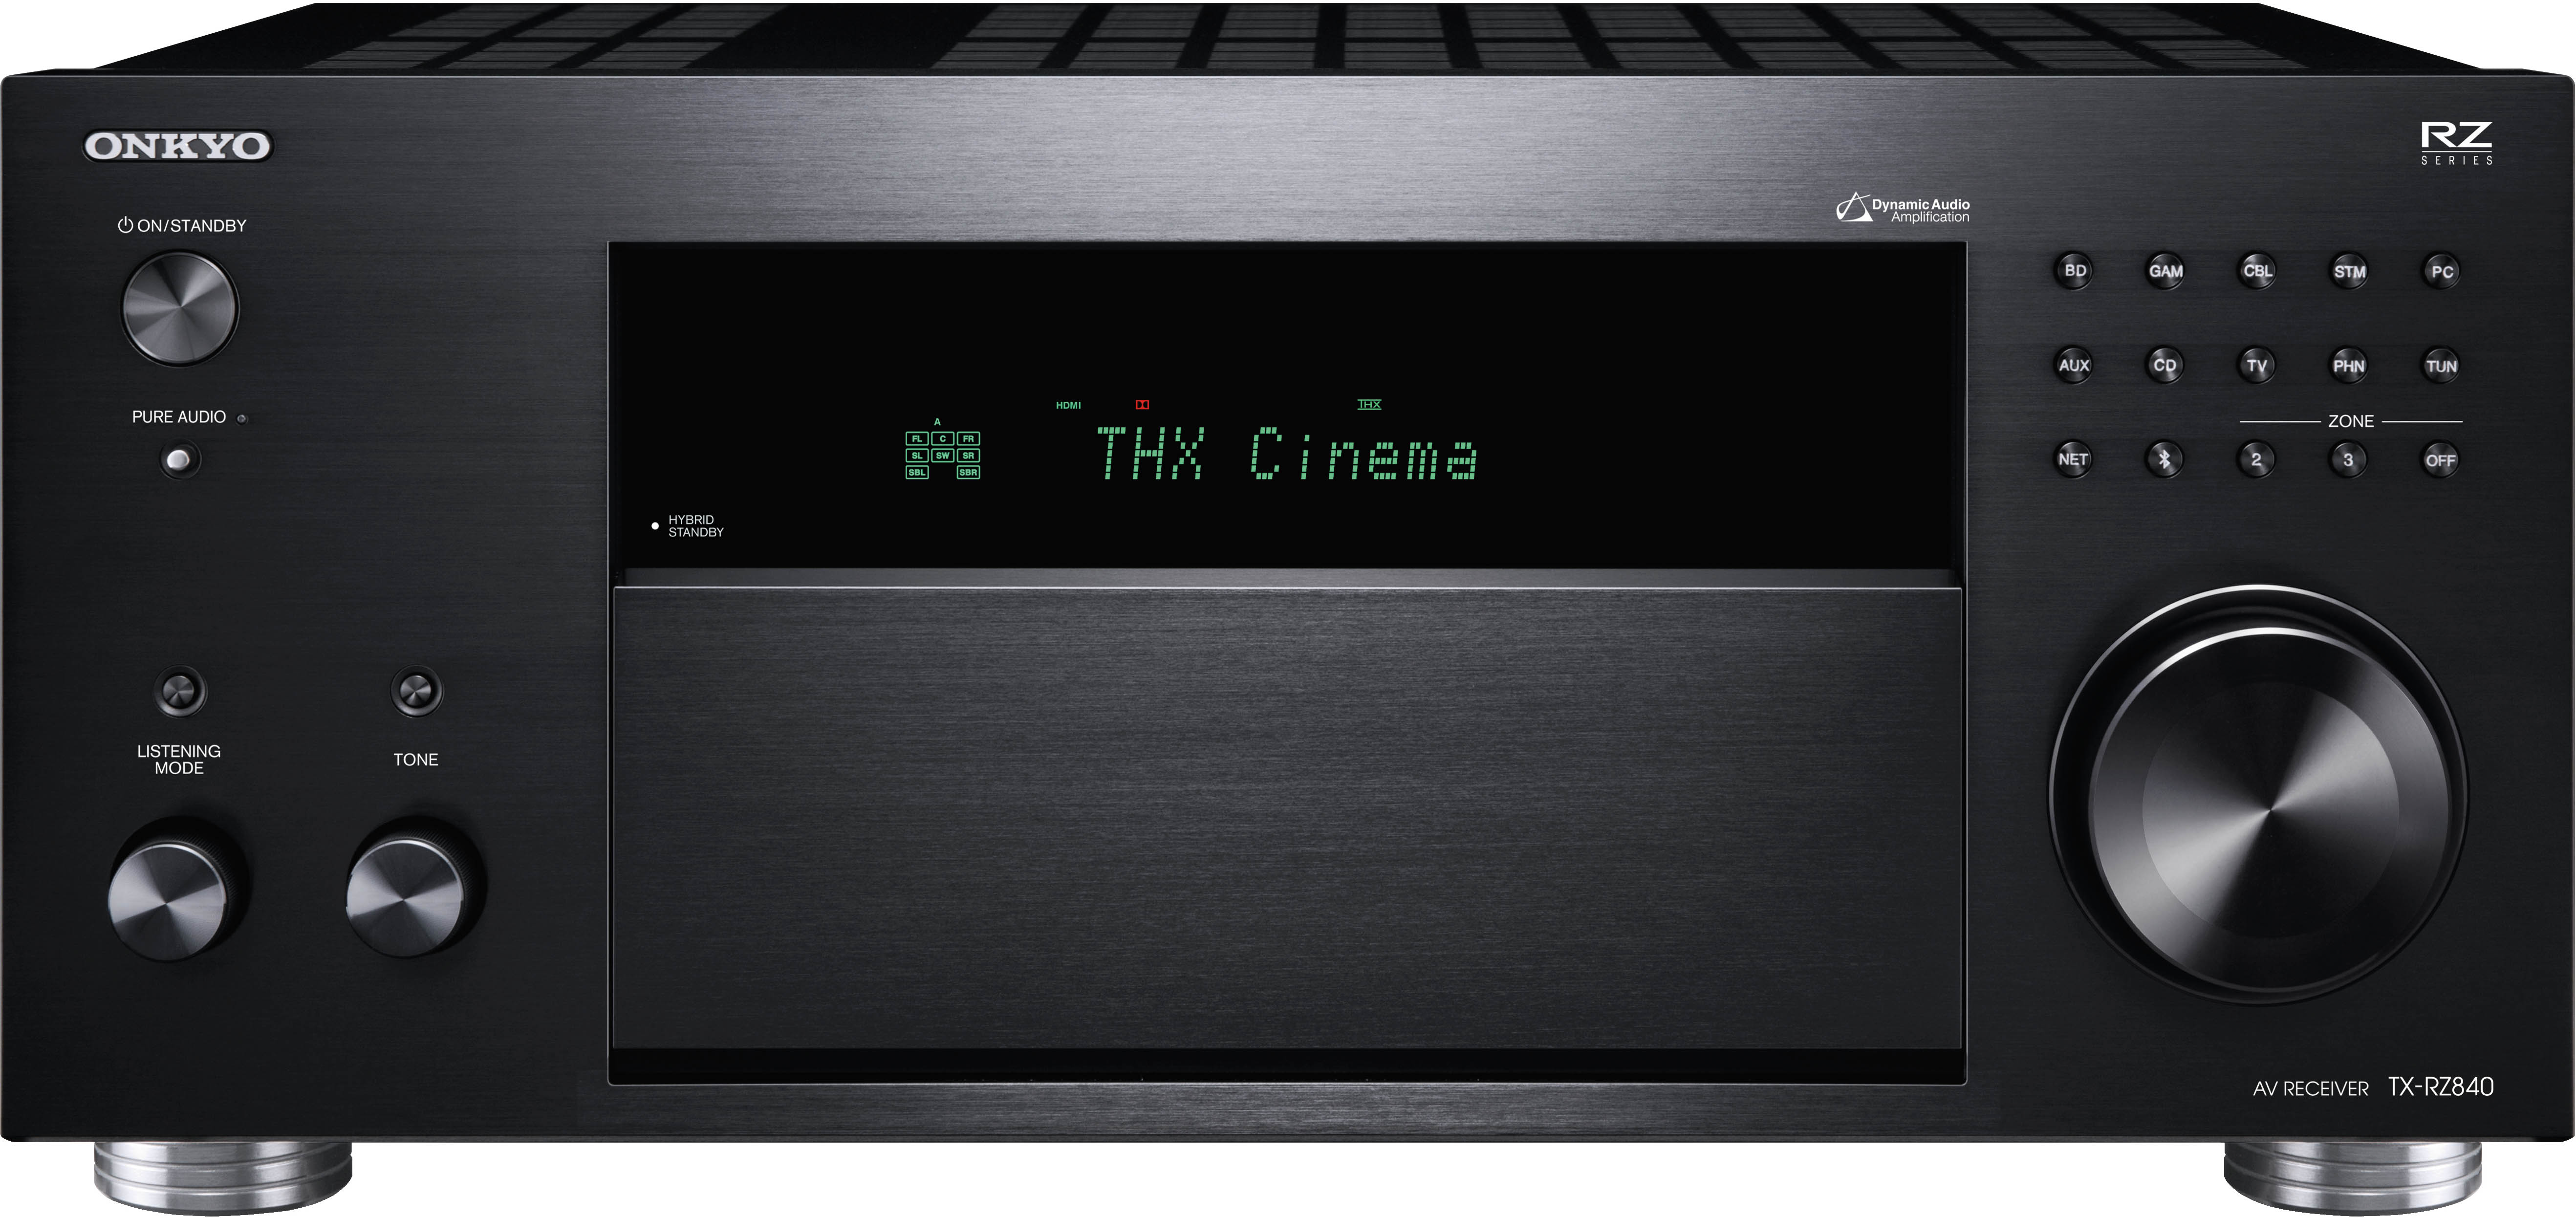 Onkyo TX-RZ840 Review and Specs